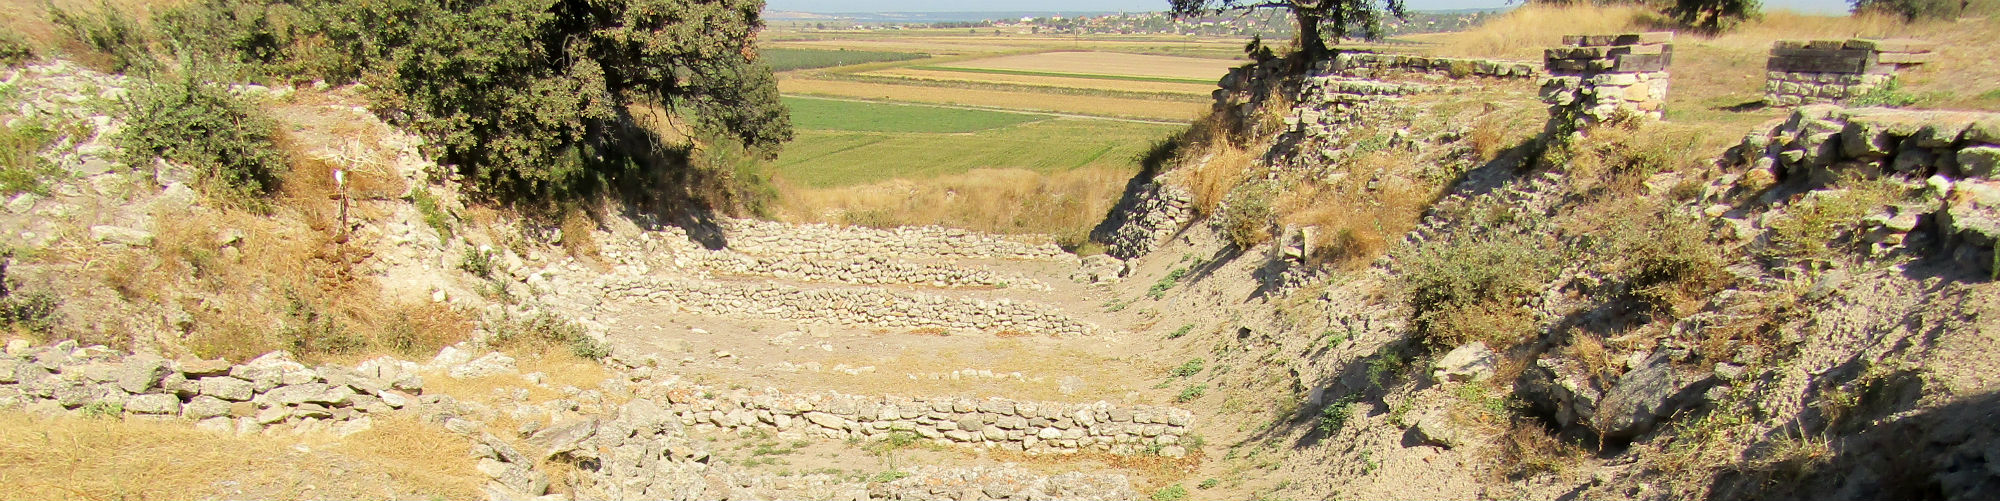 Schliemann's Trench, Ancient City of Troy Archaeological Site, Tevfikiye, Çanakkale Province